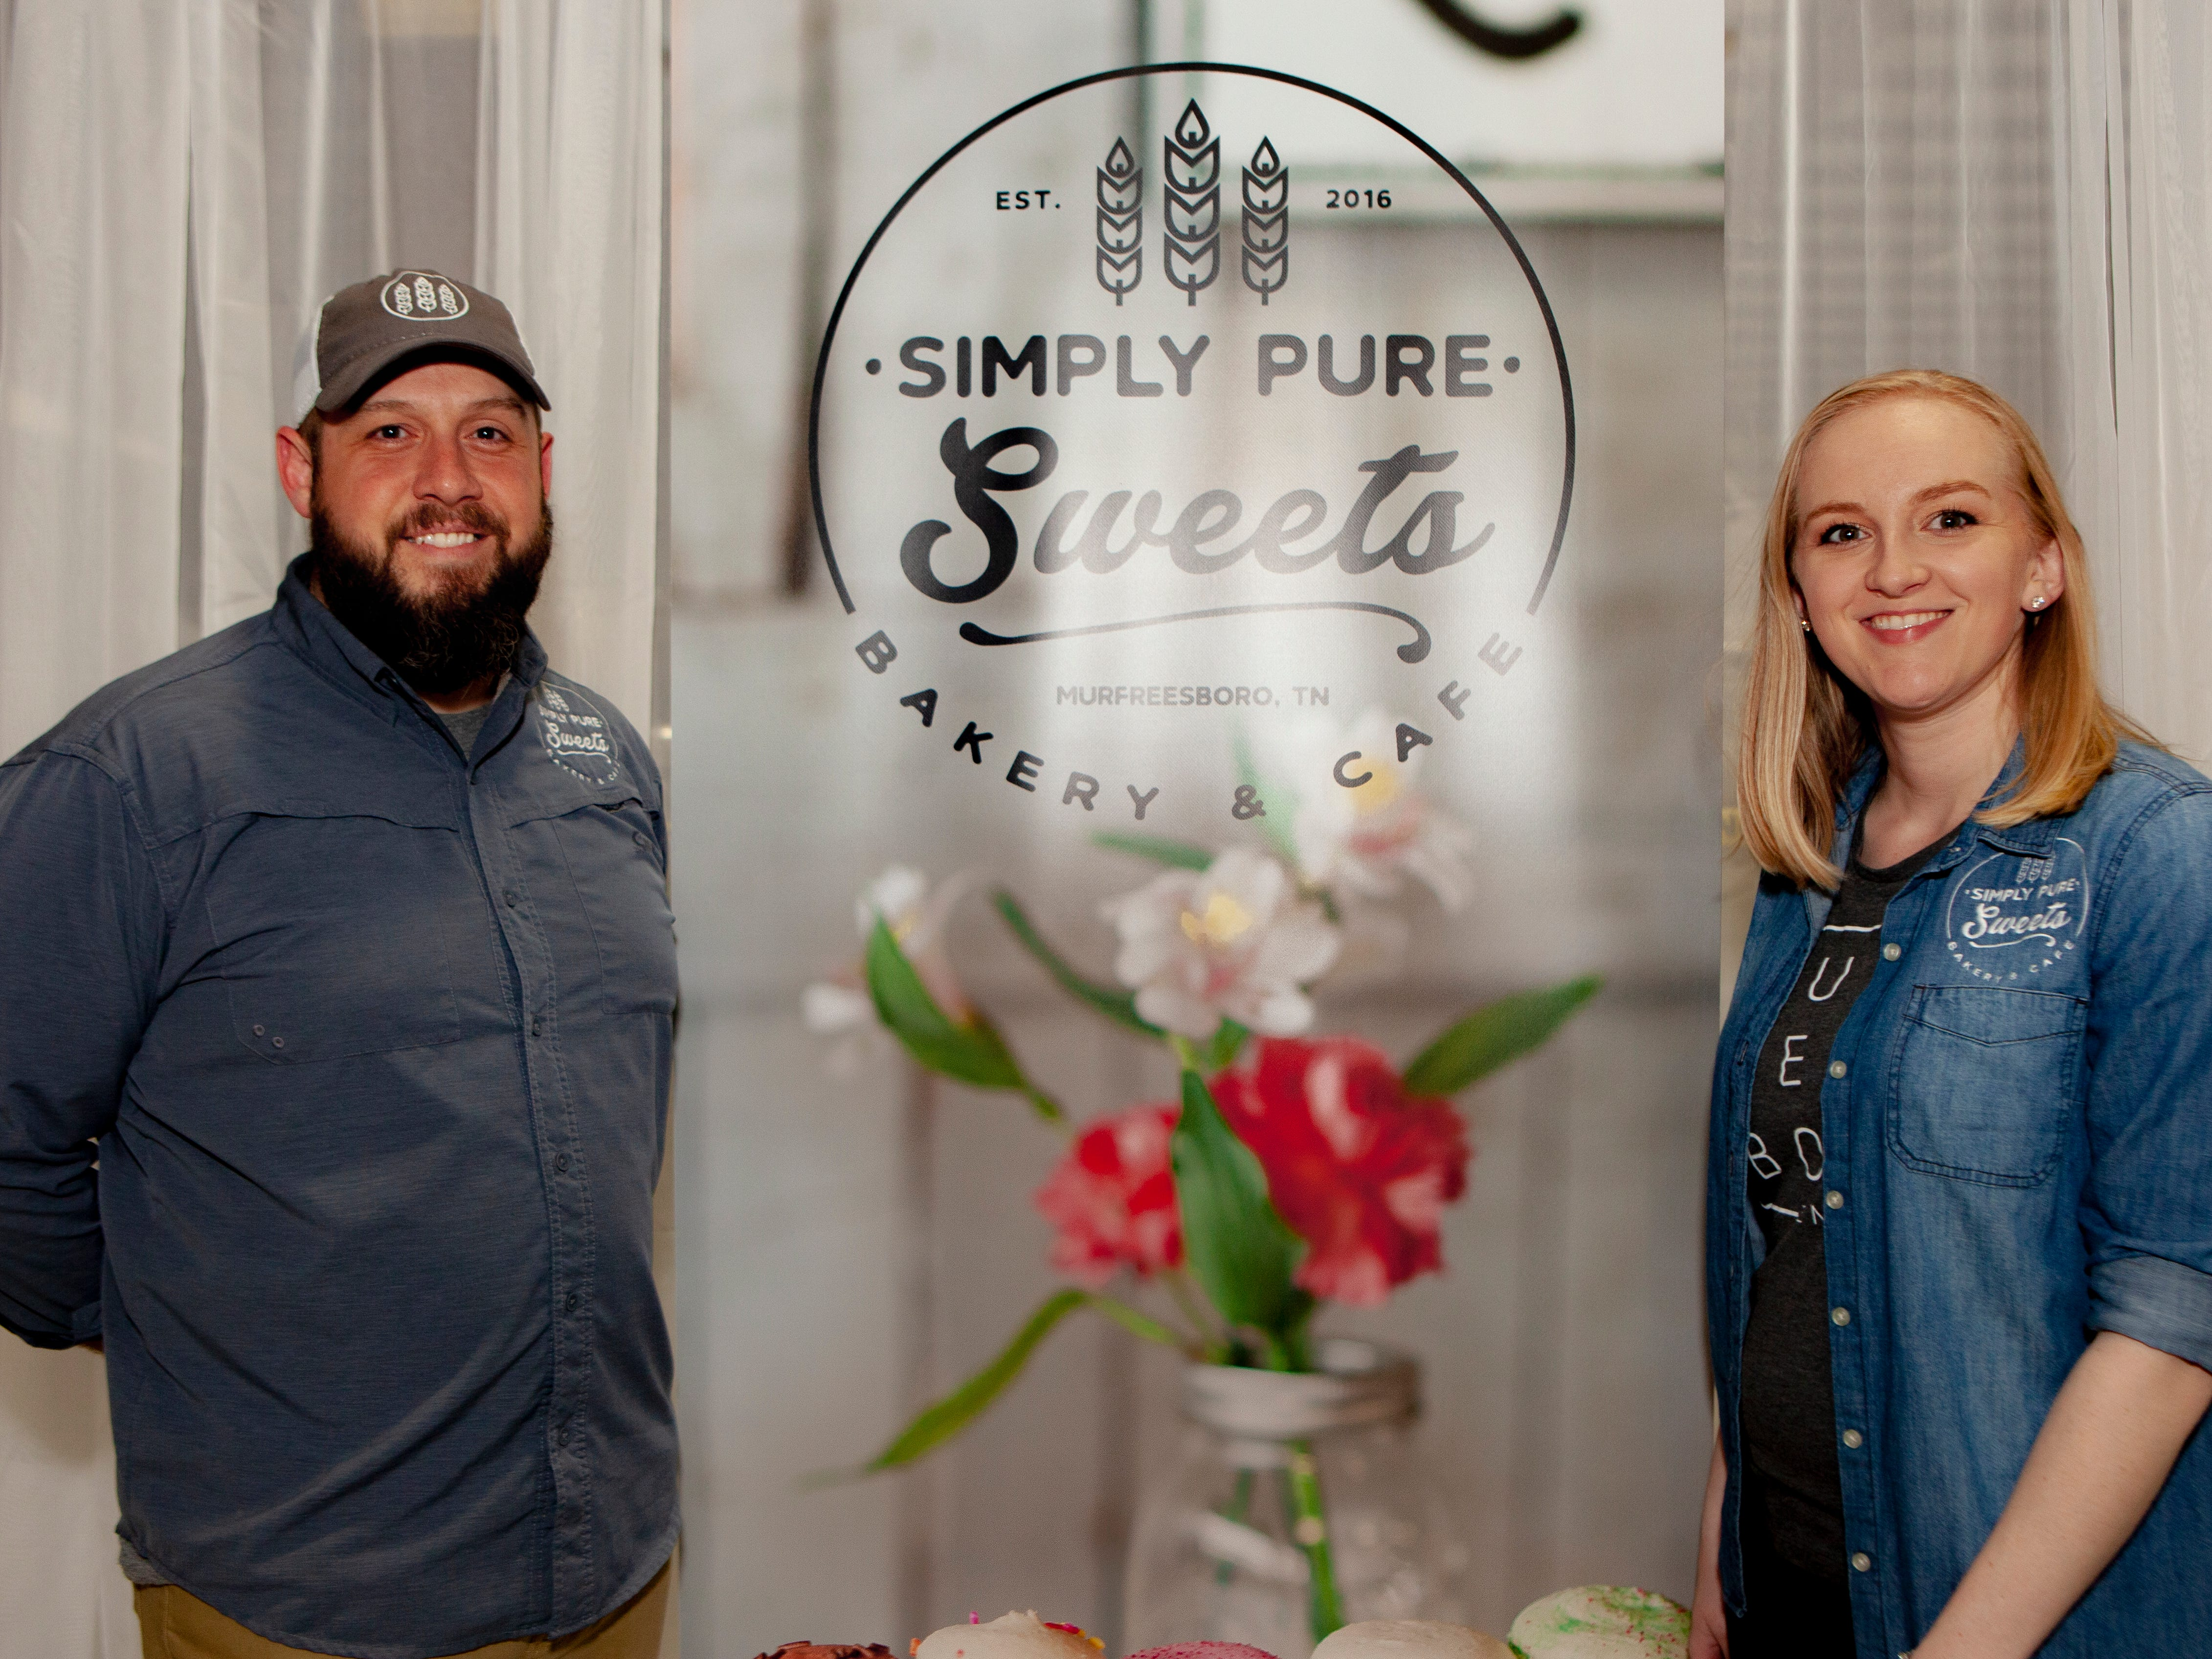 Matthew Joseph andChantell Kennedy Shehan at the Light Up Local Firefly Awards, hosted by Locally Owned Murfreesboro and Smyrna Independent Merchants Association. Awards were presented Tuesday, April 23, 2019 at Hollingshead Aviation at Smyrna Airport.